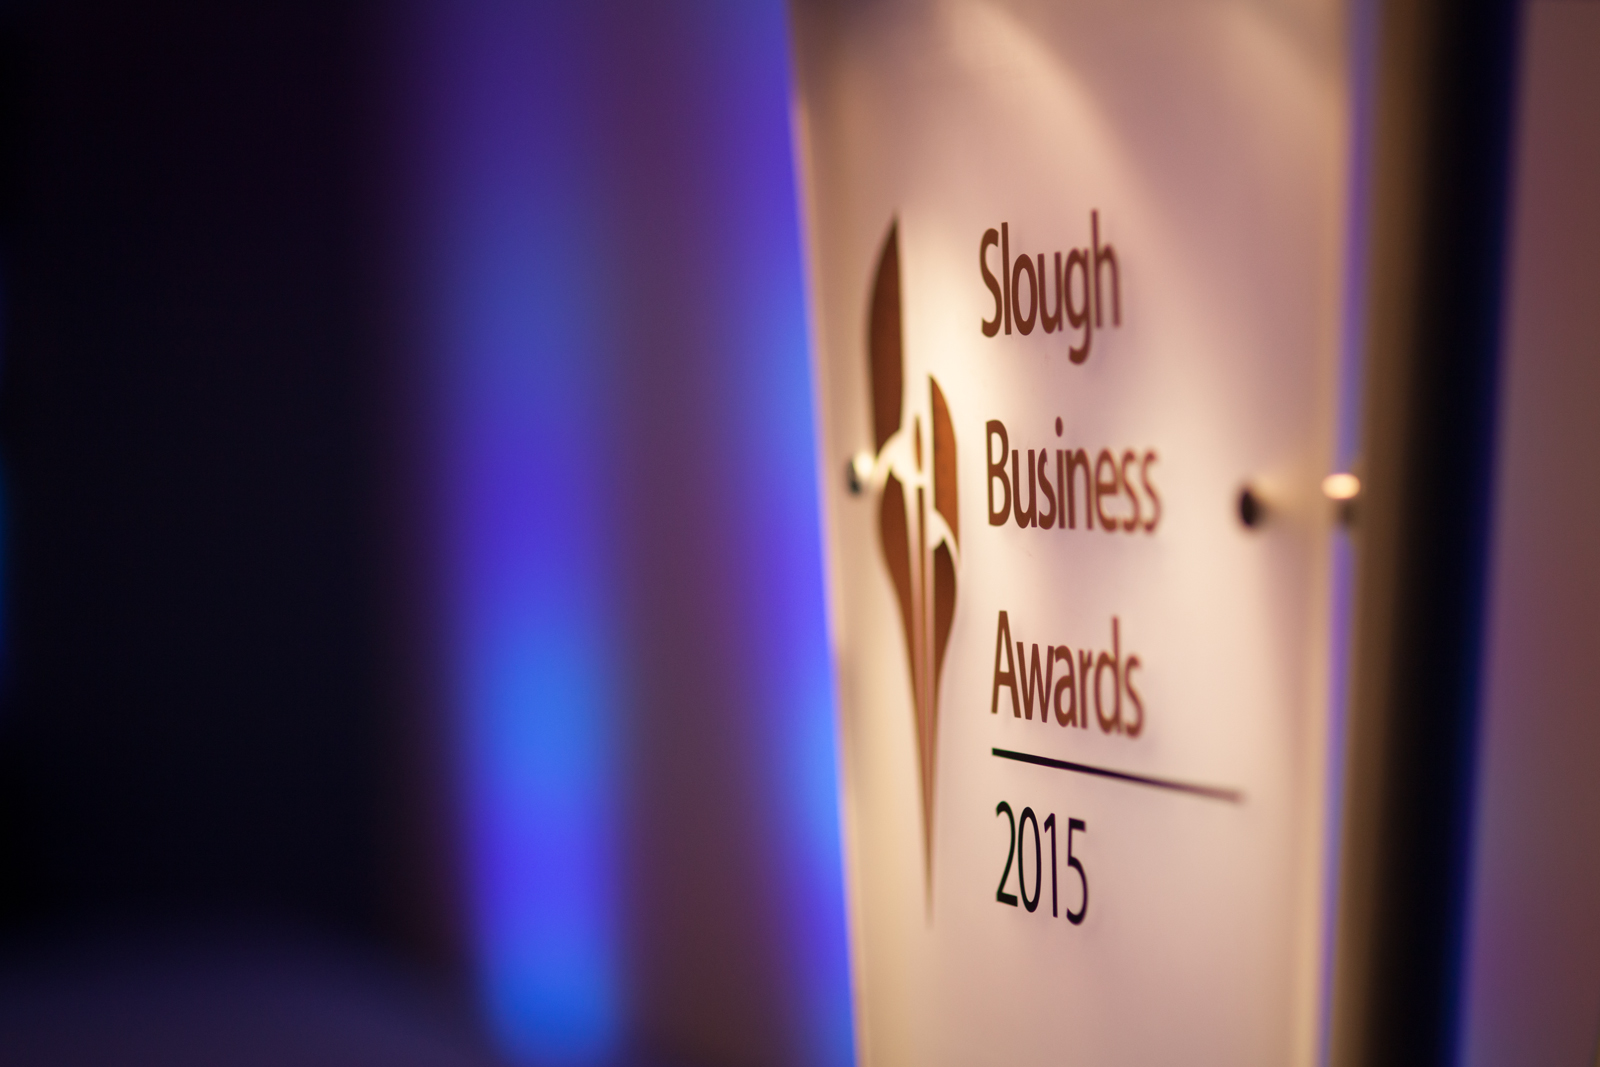 Slough Business Awards Dinner